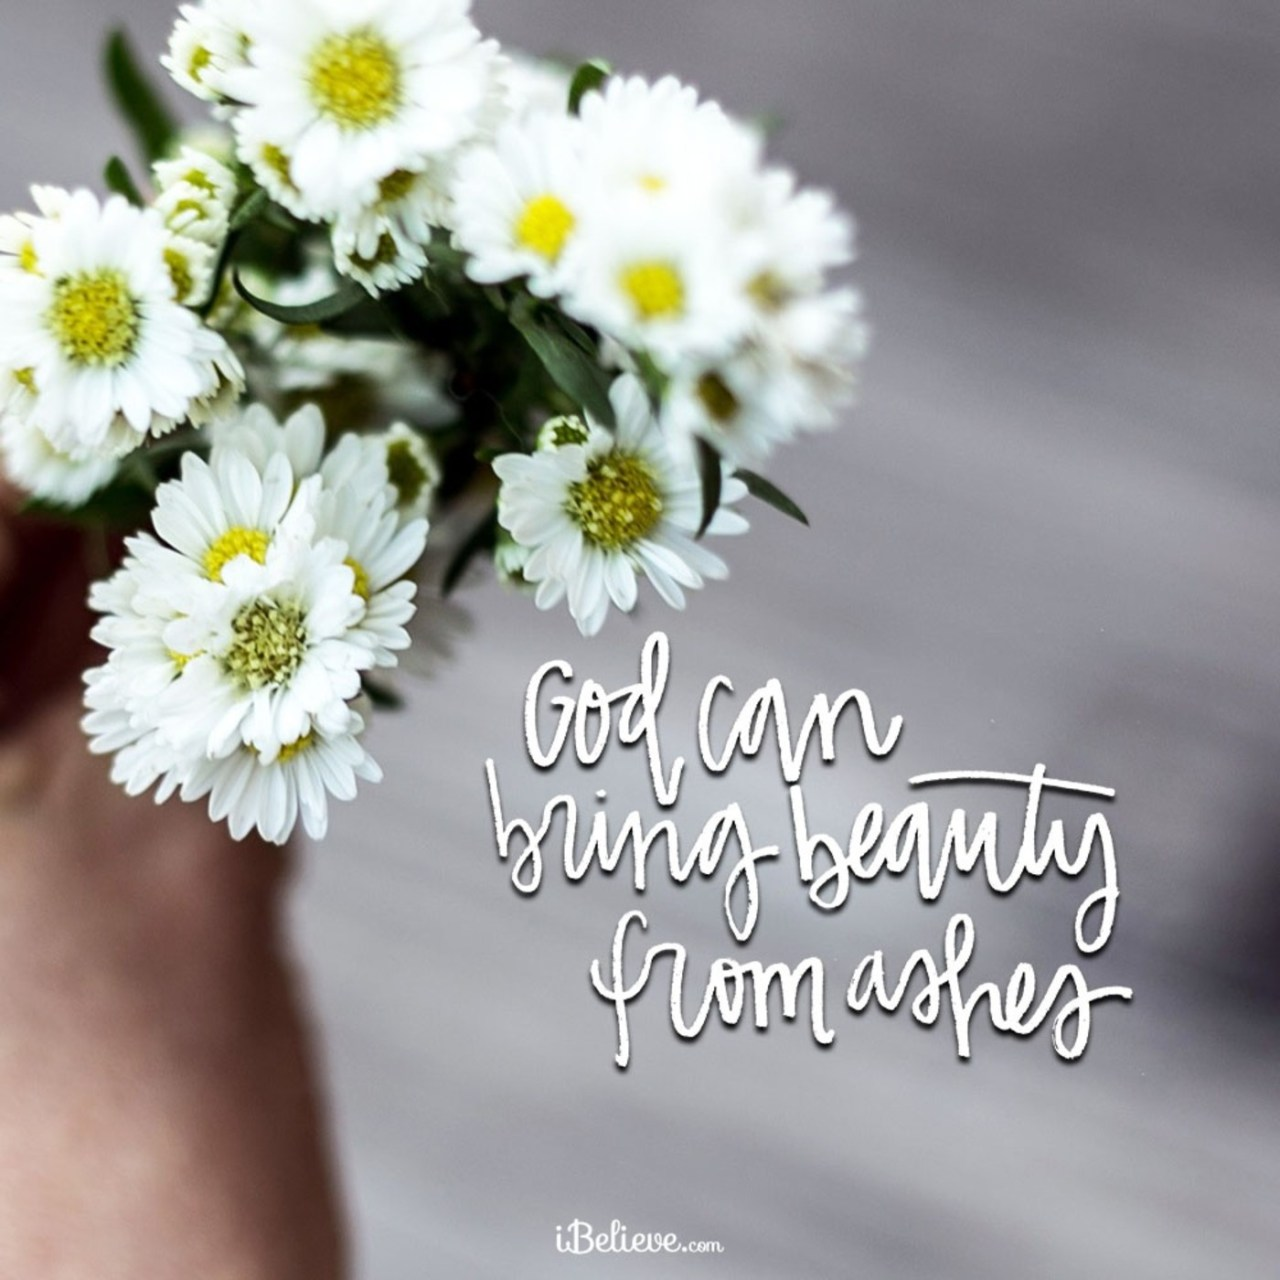 A Prayer for God to Bring Beauty From Ashes